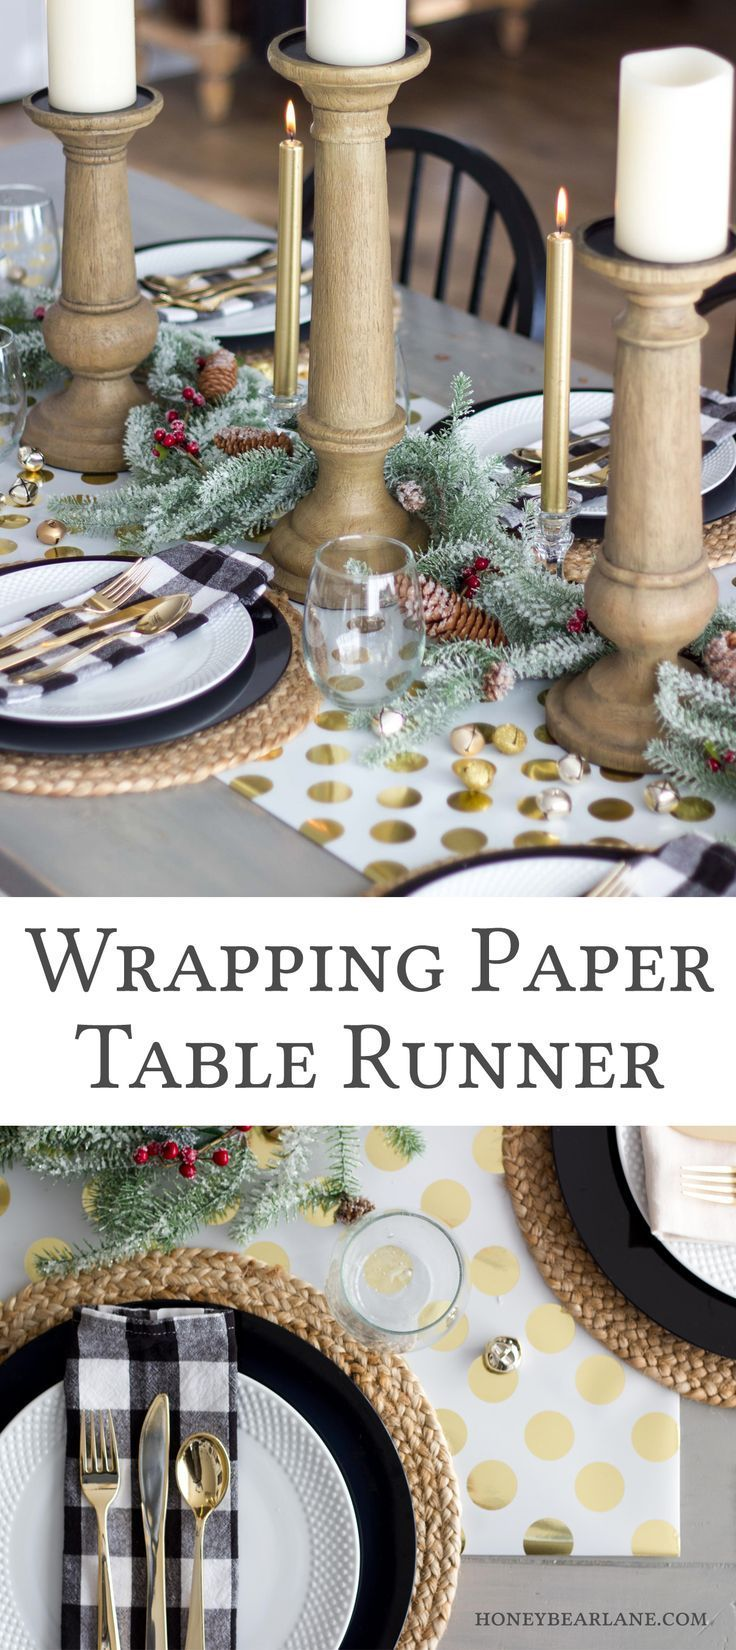 Christmas Table Runner Diy.Easy Wrapping Paper Table Runner Diy Project Ideas Paper